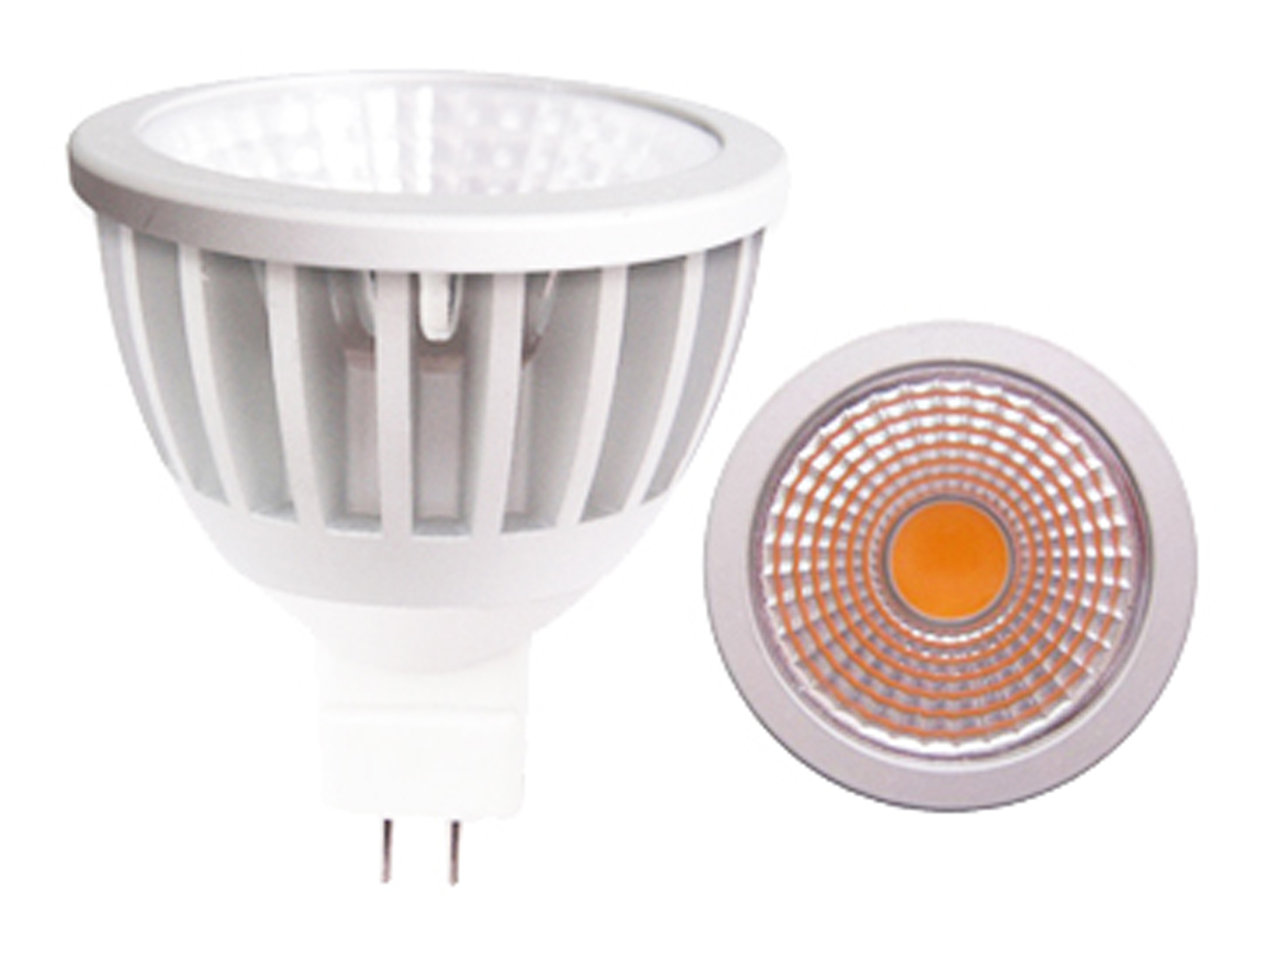 Led spots dimmbar mbel inspiration und innenraum ideen led spot mr16 7w 620lm 30 tageslichtweiss dimmbar led lampen parisarafo Image collections